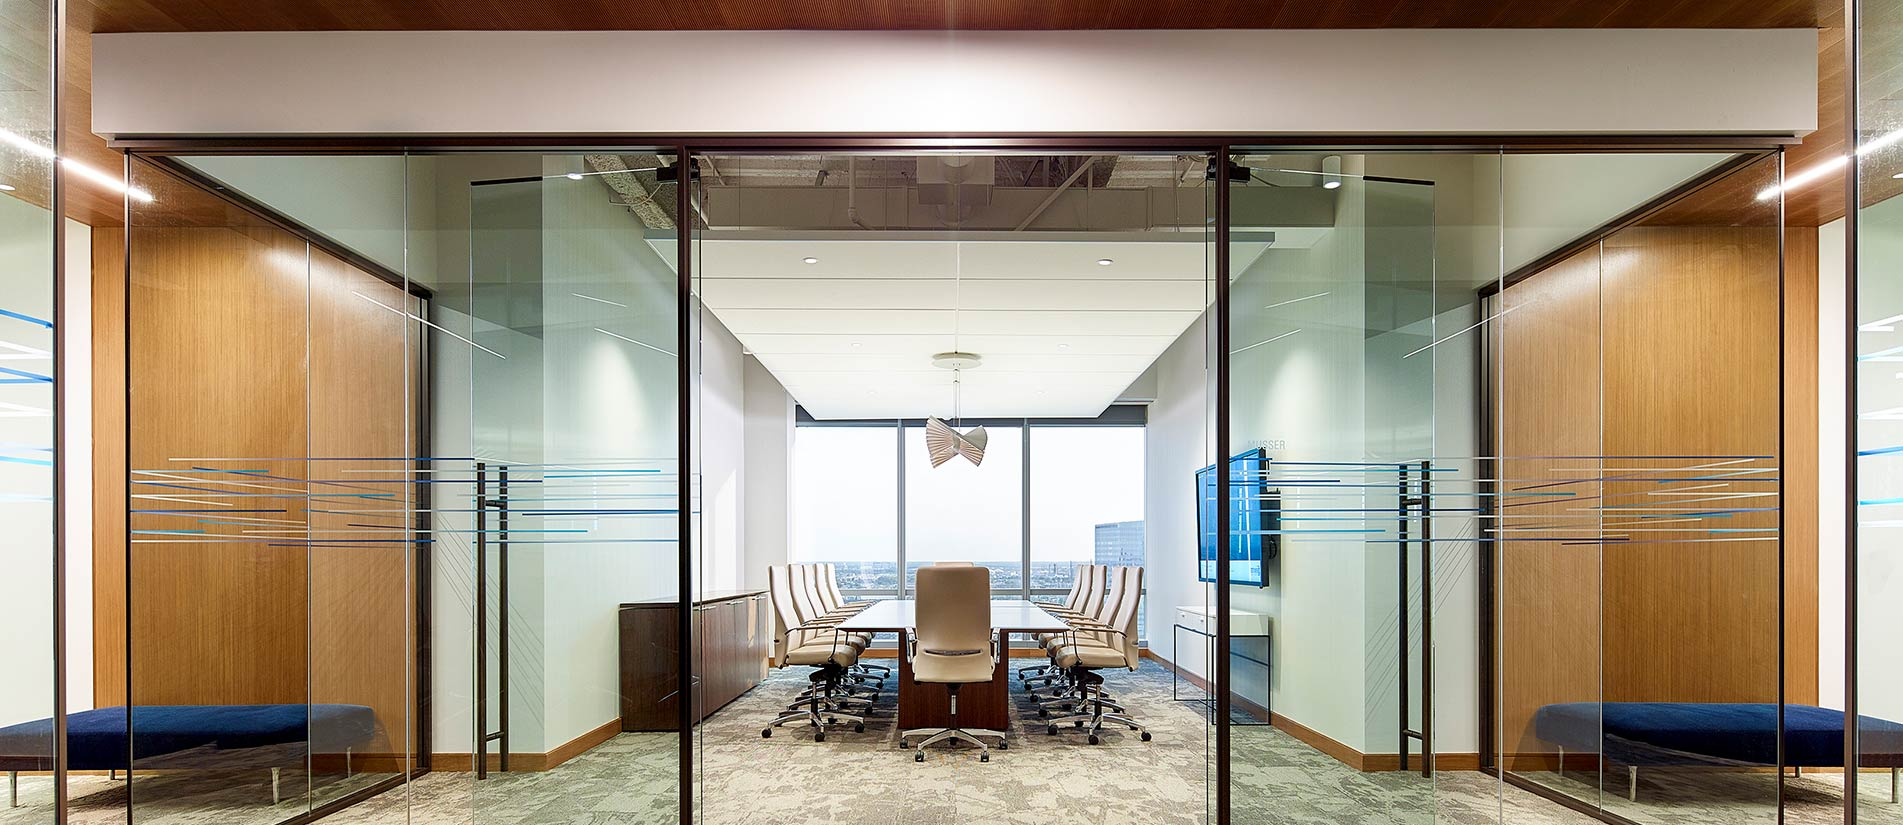 Large Conference Room created with One LP flexible glass office wall system and doors